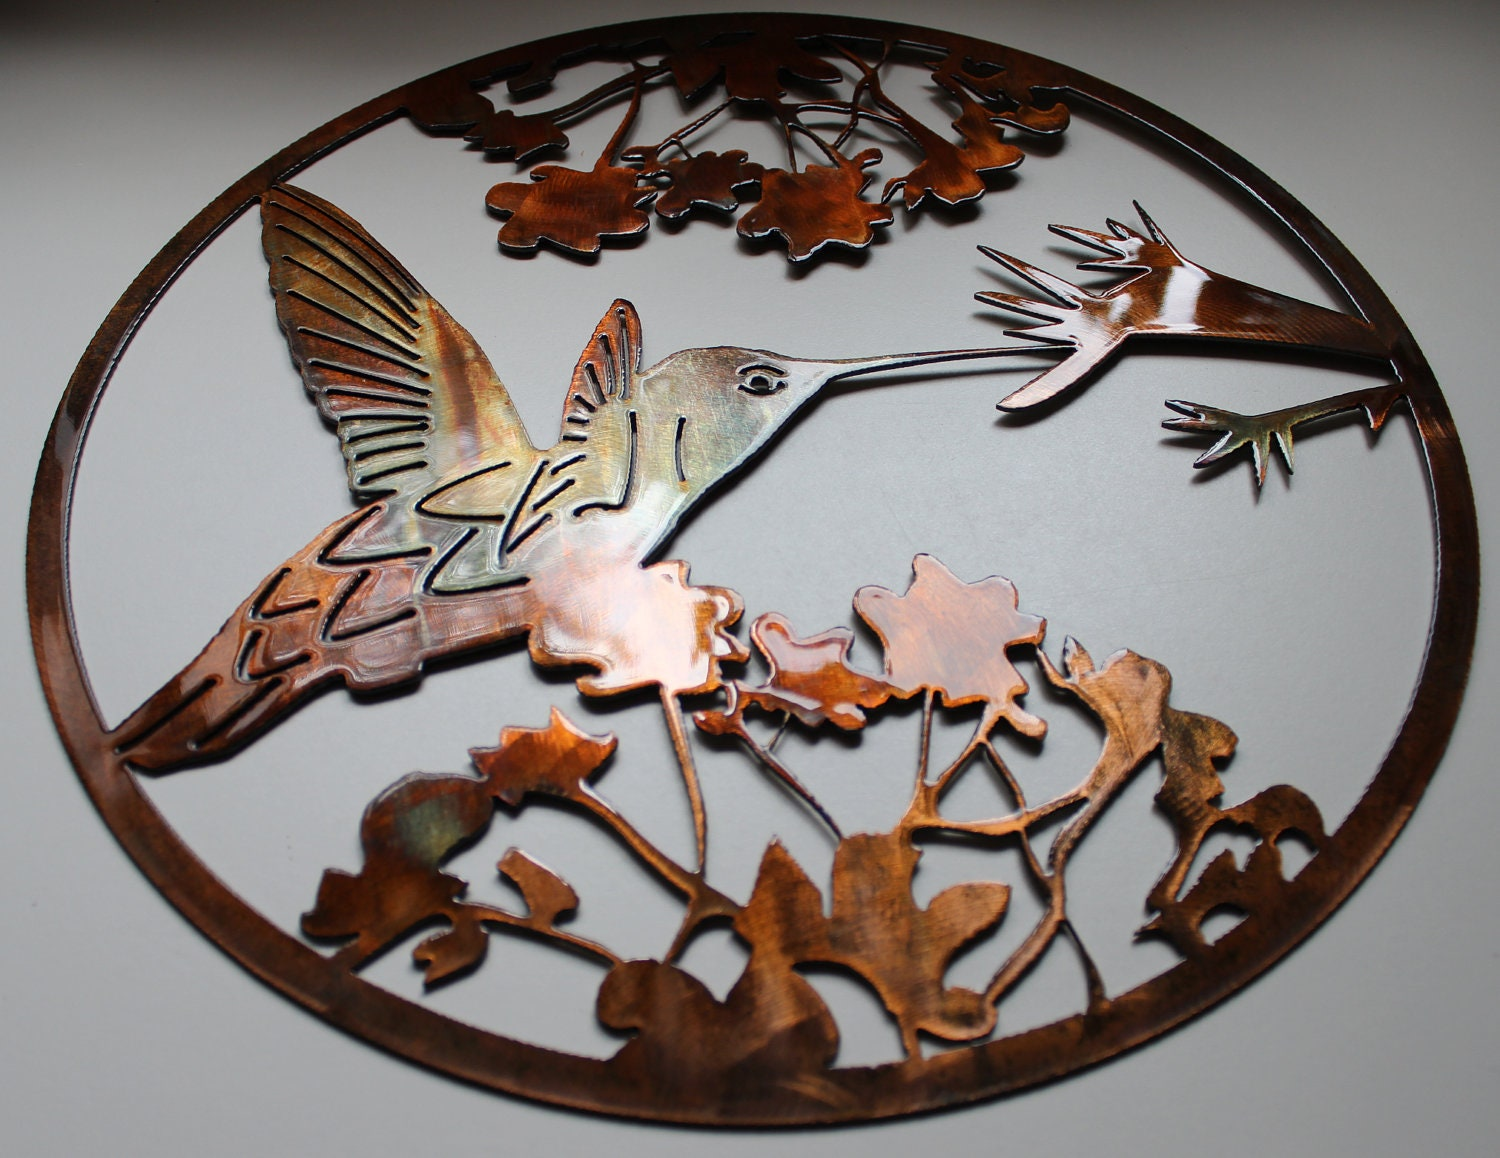 Hummingbird metal wall art decor by hgmw by for Hummingbird decor